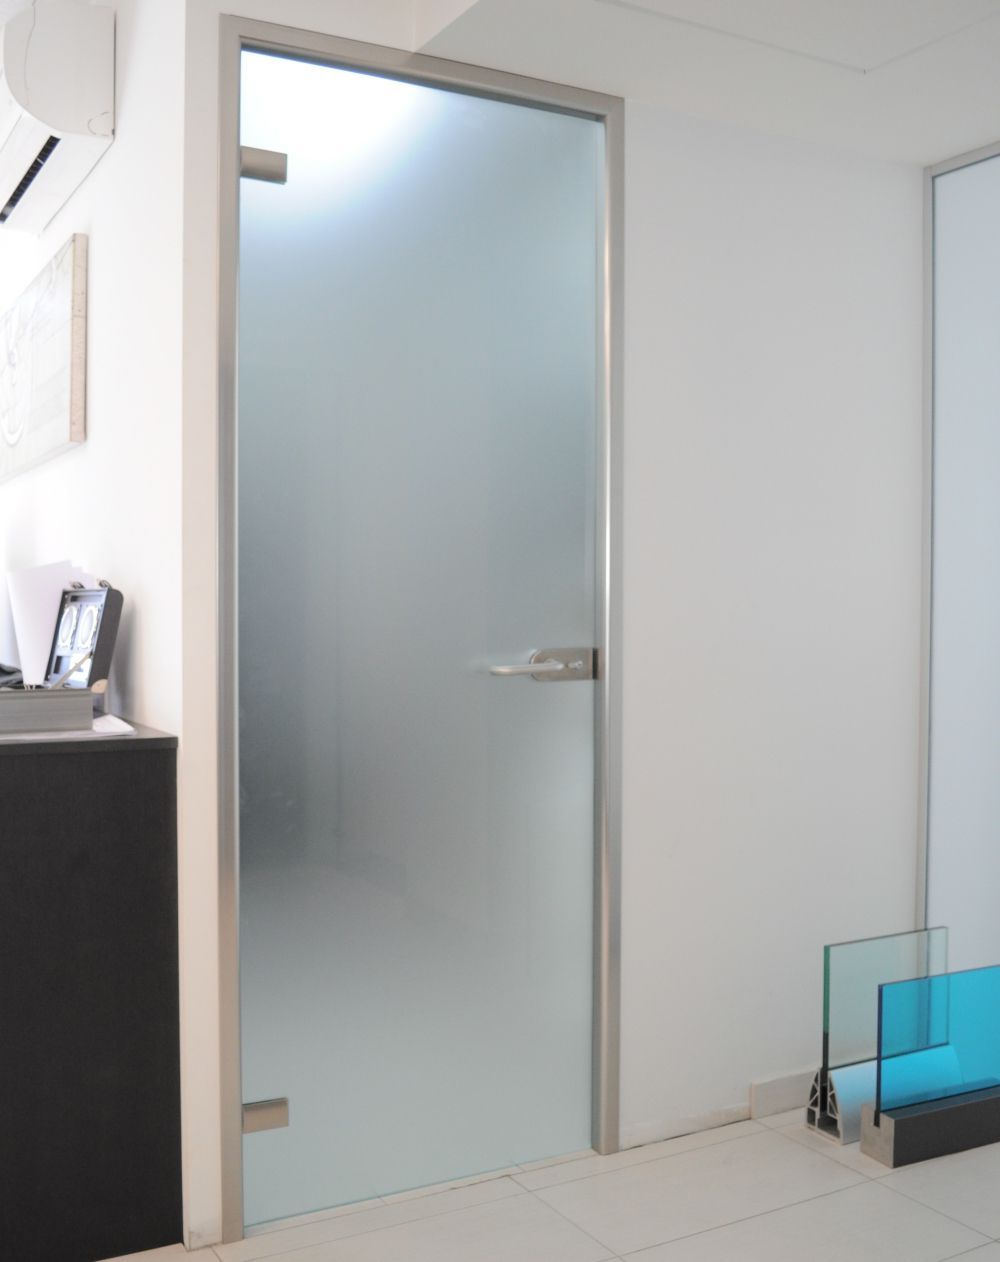 Room ider in the corner bathroom ideas opaque glass opaque glass - Interior Door Designs Interior Door Frosted Glass And Laundry Rooms Glass Interior Doors